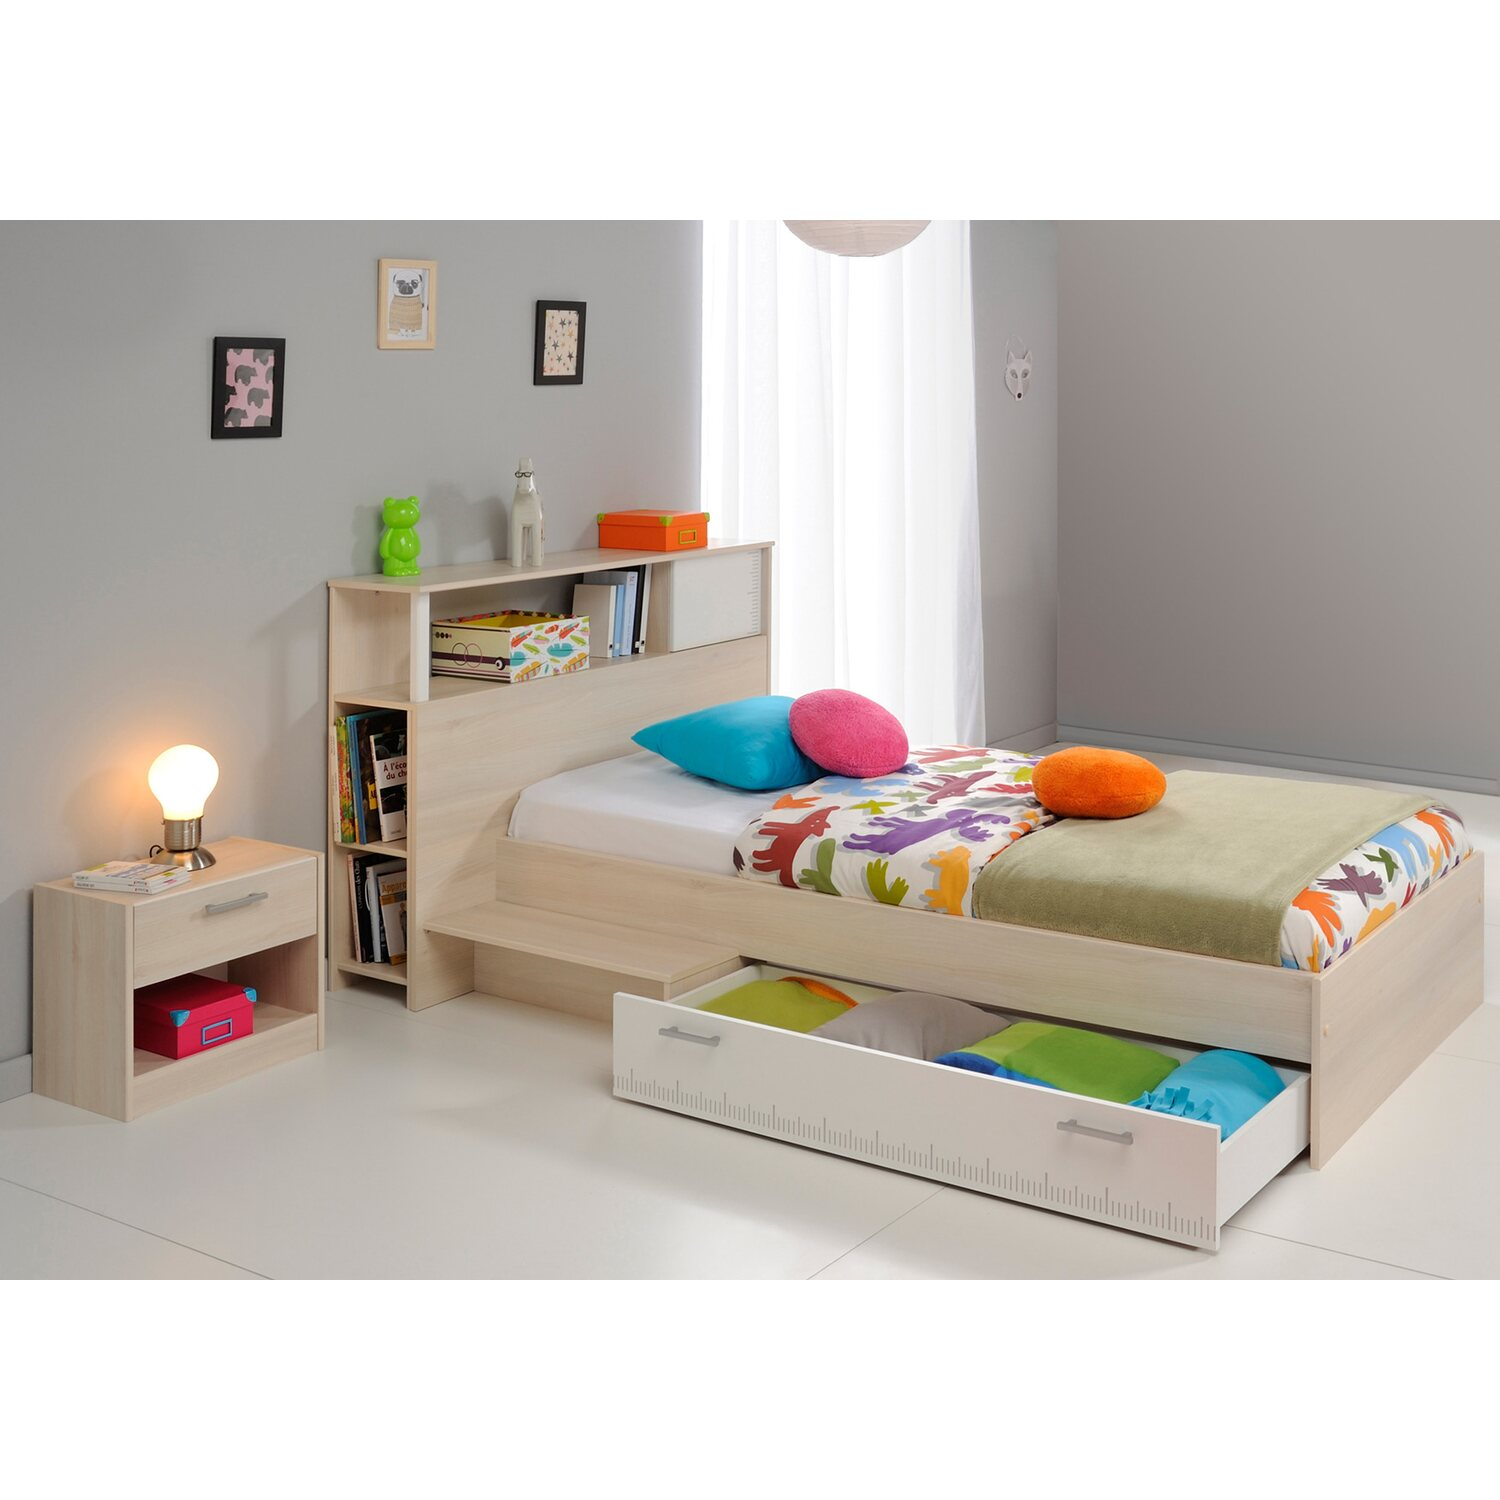 parisot kinderbett mit nachttisch 3 teilig charly akazie wei kaufen bei obi. Black Bedroom Furniture Sets. Home Design Ideas